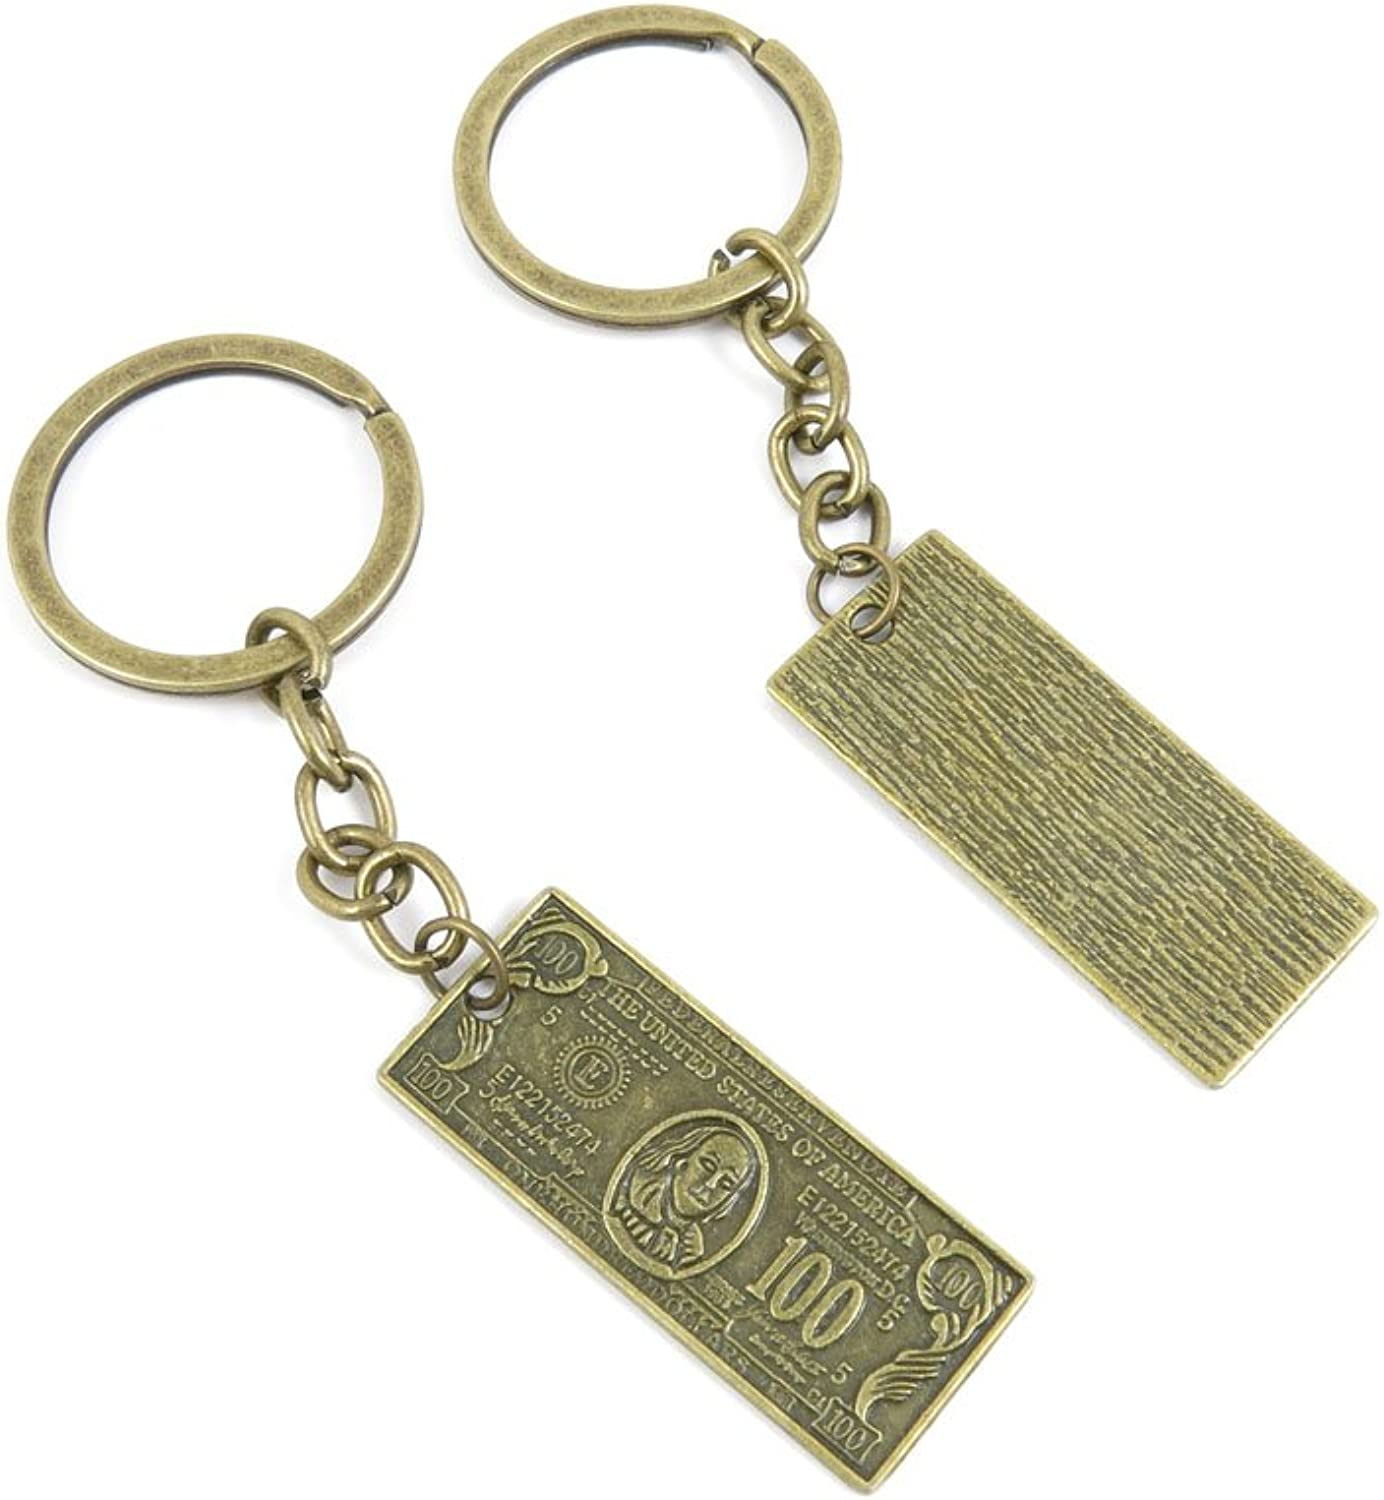 80 PCS Keyring Car Door Key Ring Tag Chain Keychain Wholesale Suppliers Charms Handmade X4EH4 100 Dollar